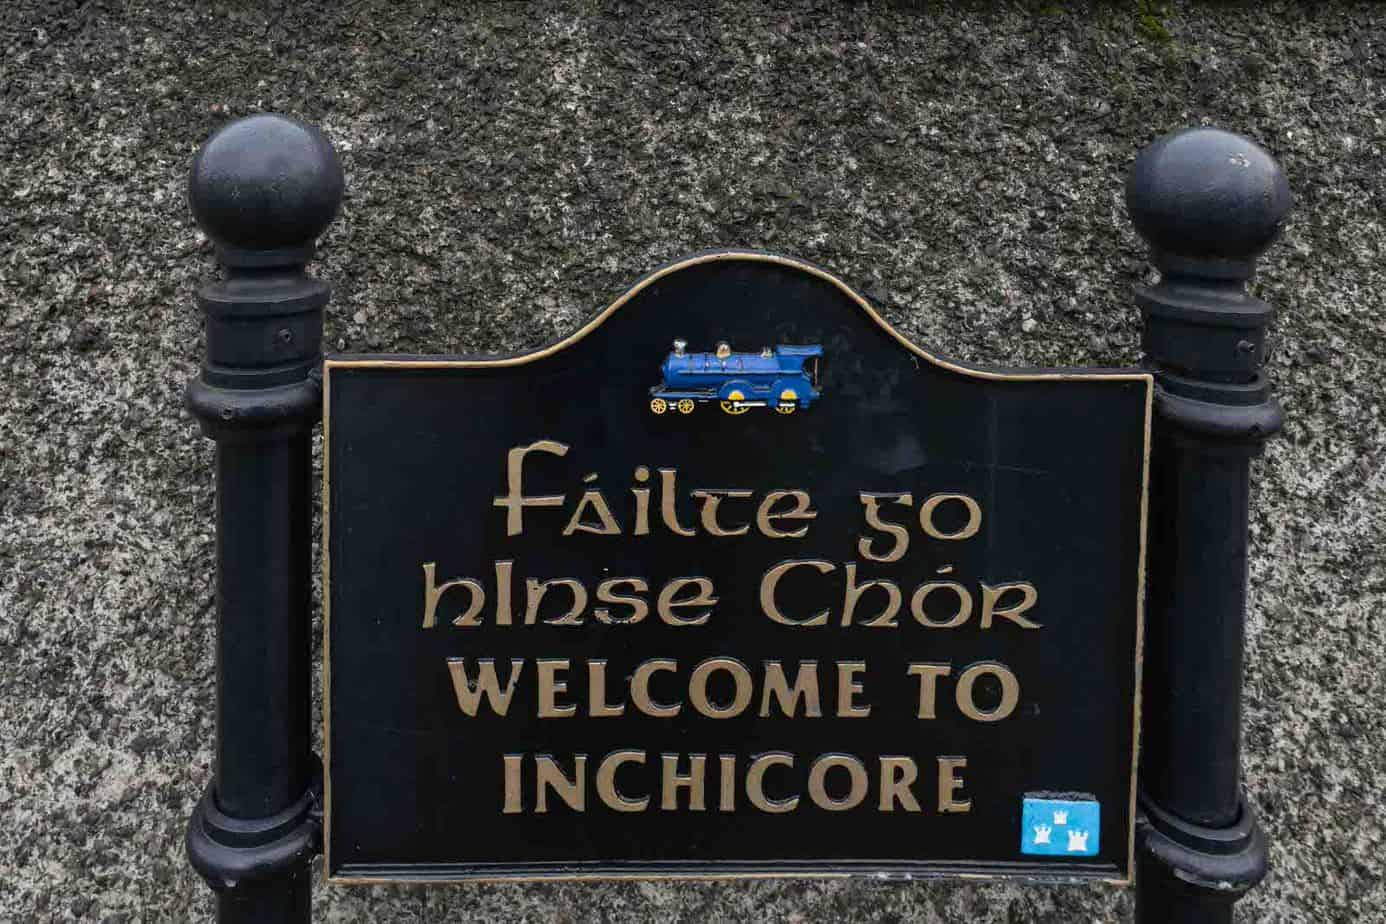 A-QUICK-VISIT-TO-INCHICORE-MAINLY-THE-TYRCONNELL-ROAD-AREA-159104-1